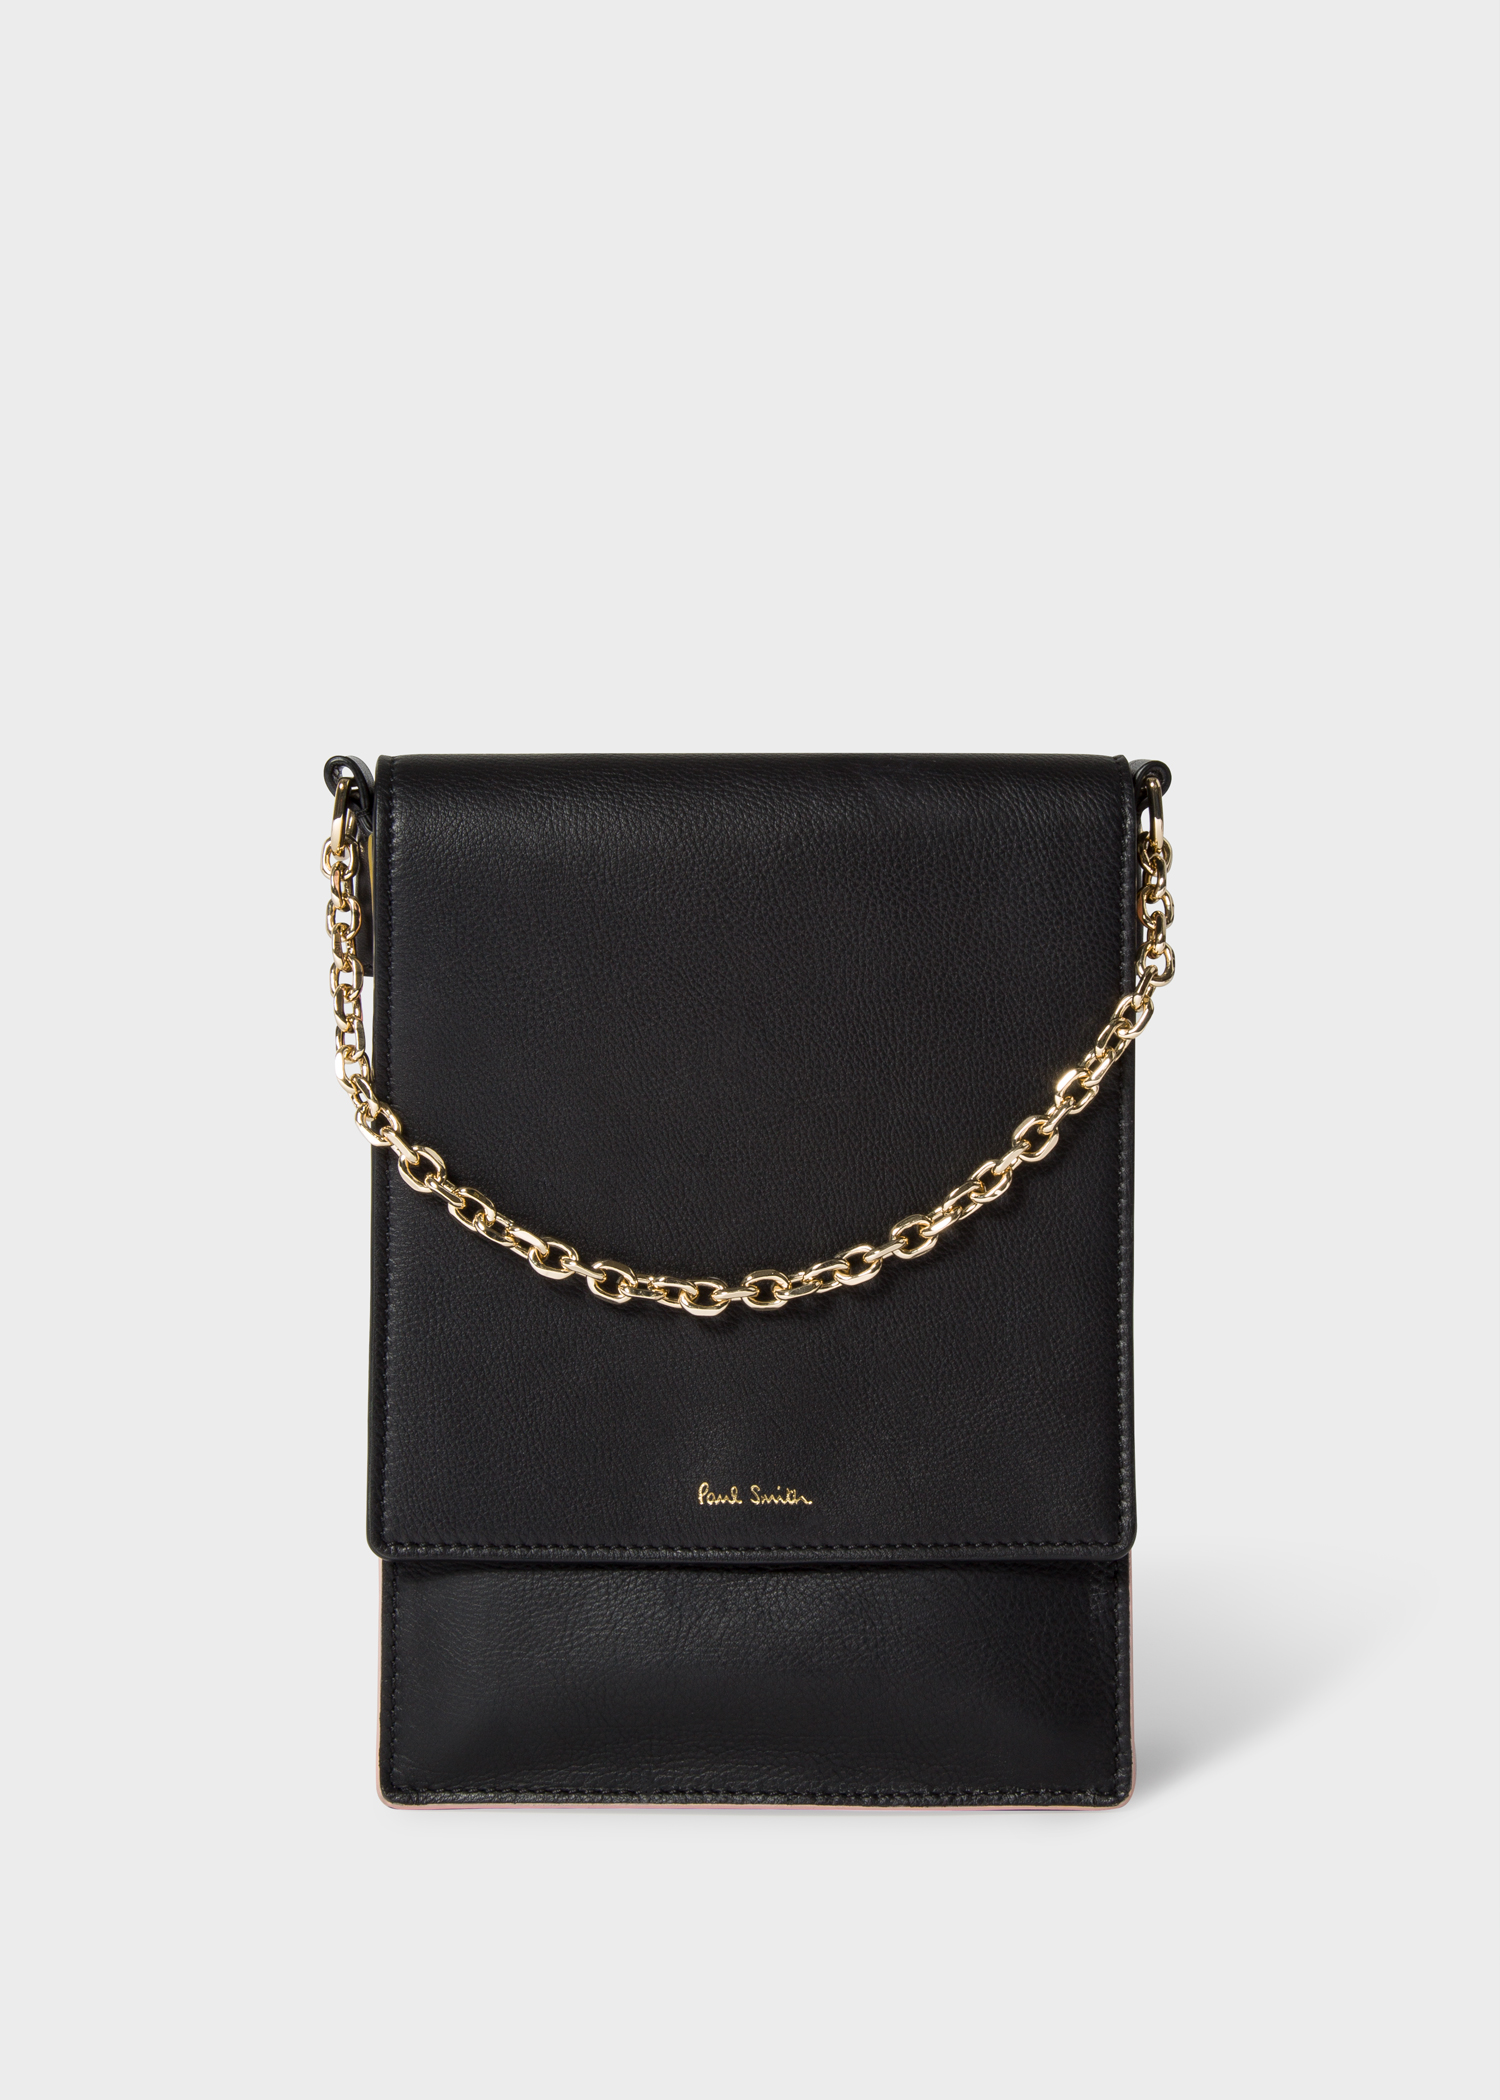 4707aa17b Front view - Women's Black Concertina Flap Cross-Body Leather Bag Paul Smith